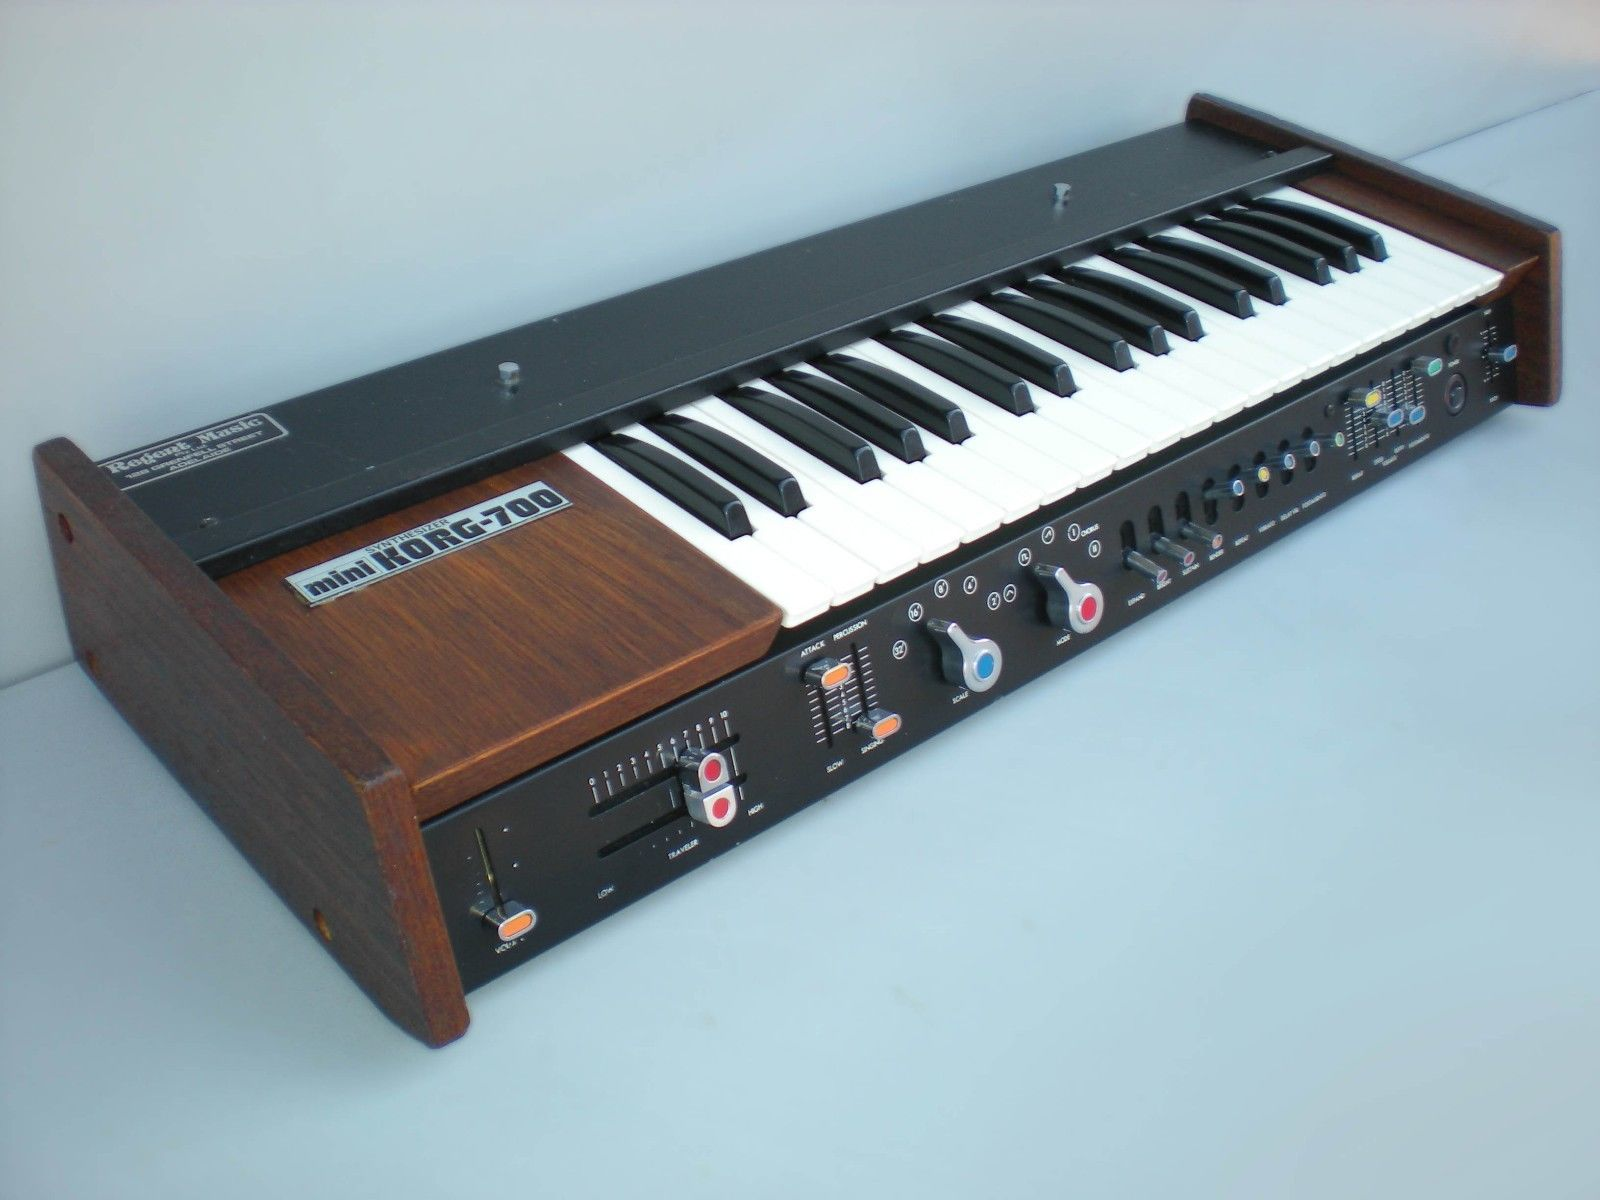 matrixsynth mini korg 700 monophonic electronic music synthesizer. Black Bedroom Furniture Sets. Home Design Ideas